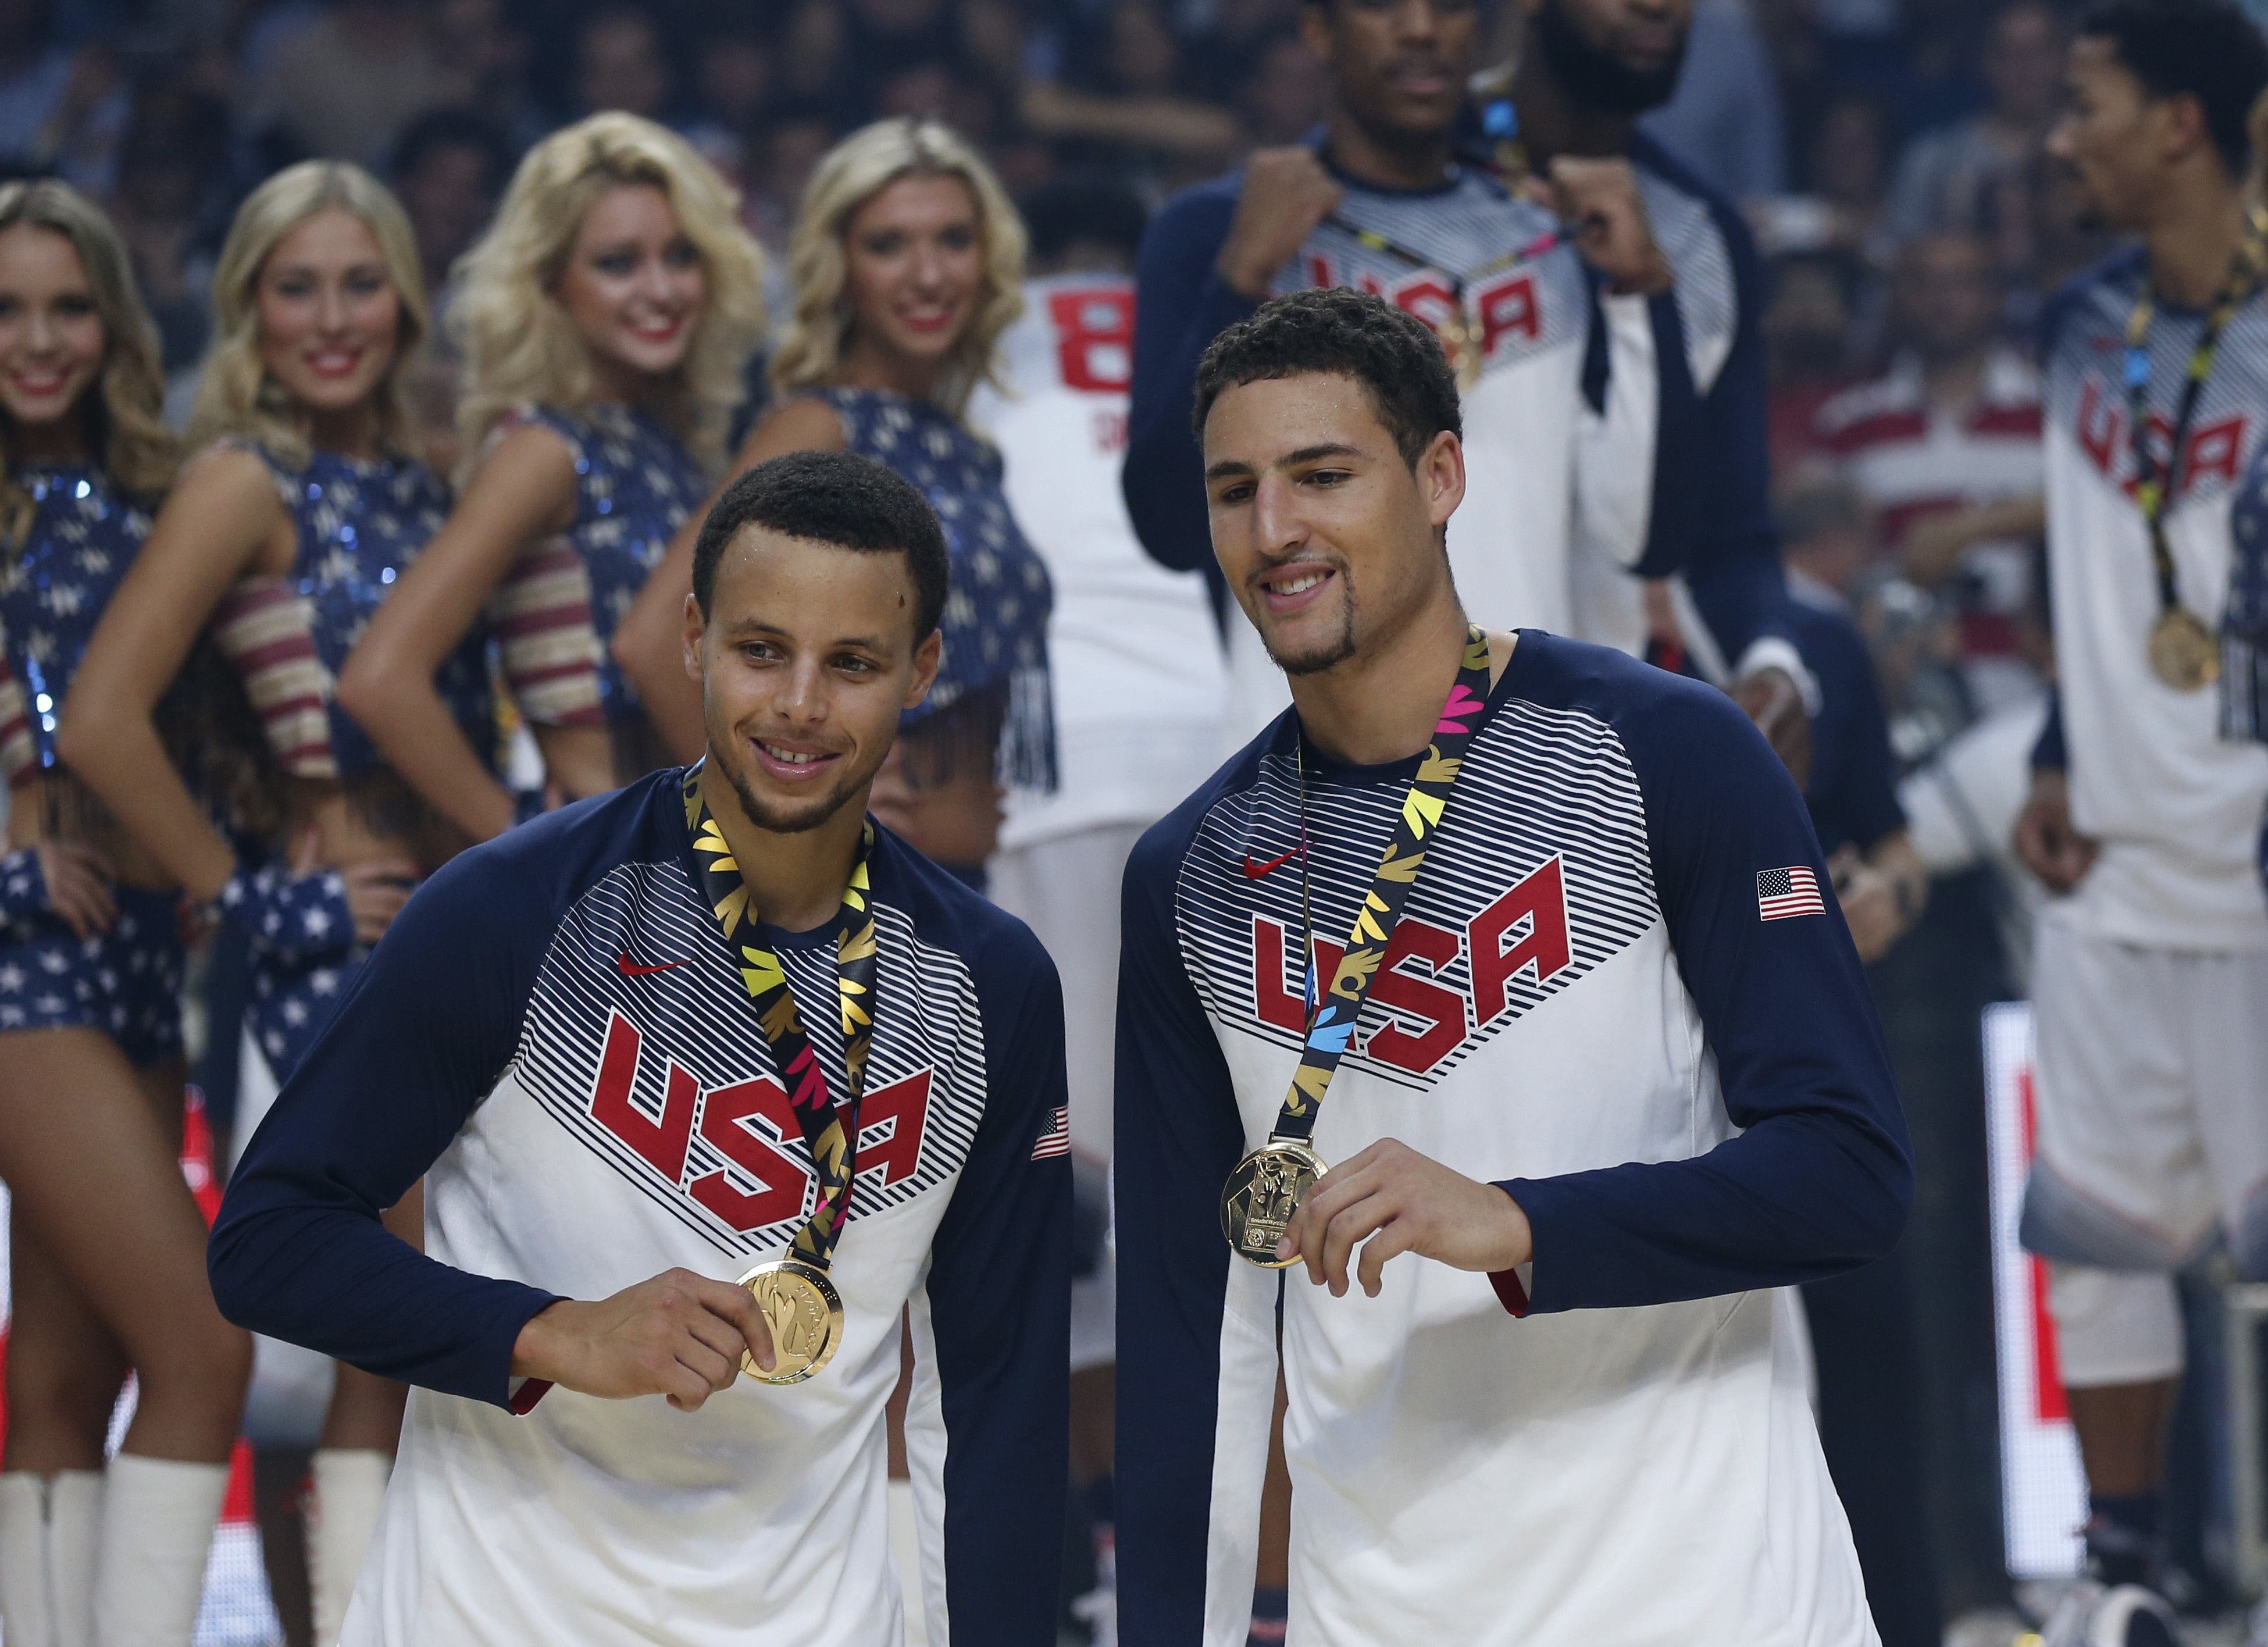 FILE - In this Sept. 14, 2014, file photo, United States' Stephen Curry, left, and Klay Thompson celebrate after wining the final World Basketball match against Serbia at the Palacio de los Deportes stadium in Madrid, Spain. Curry has withdrawn from consi